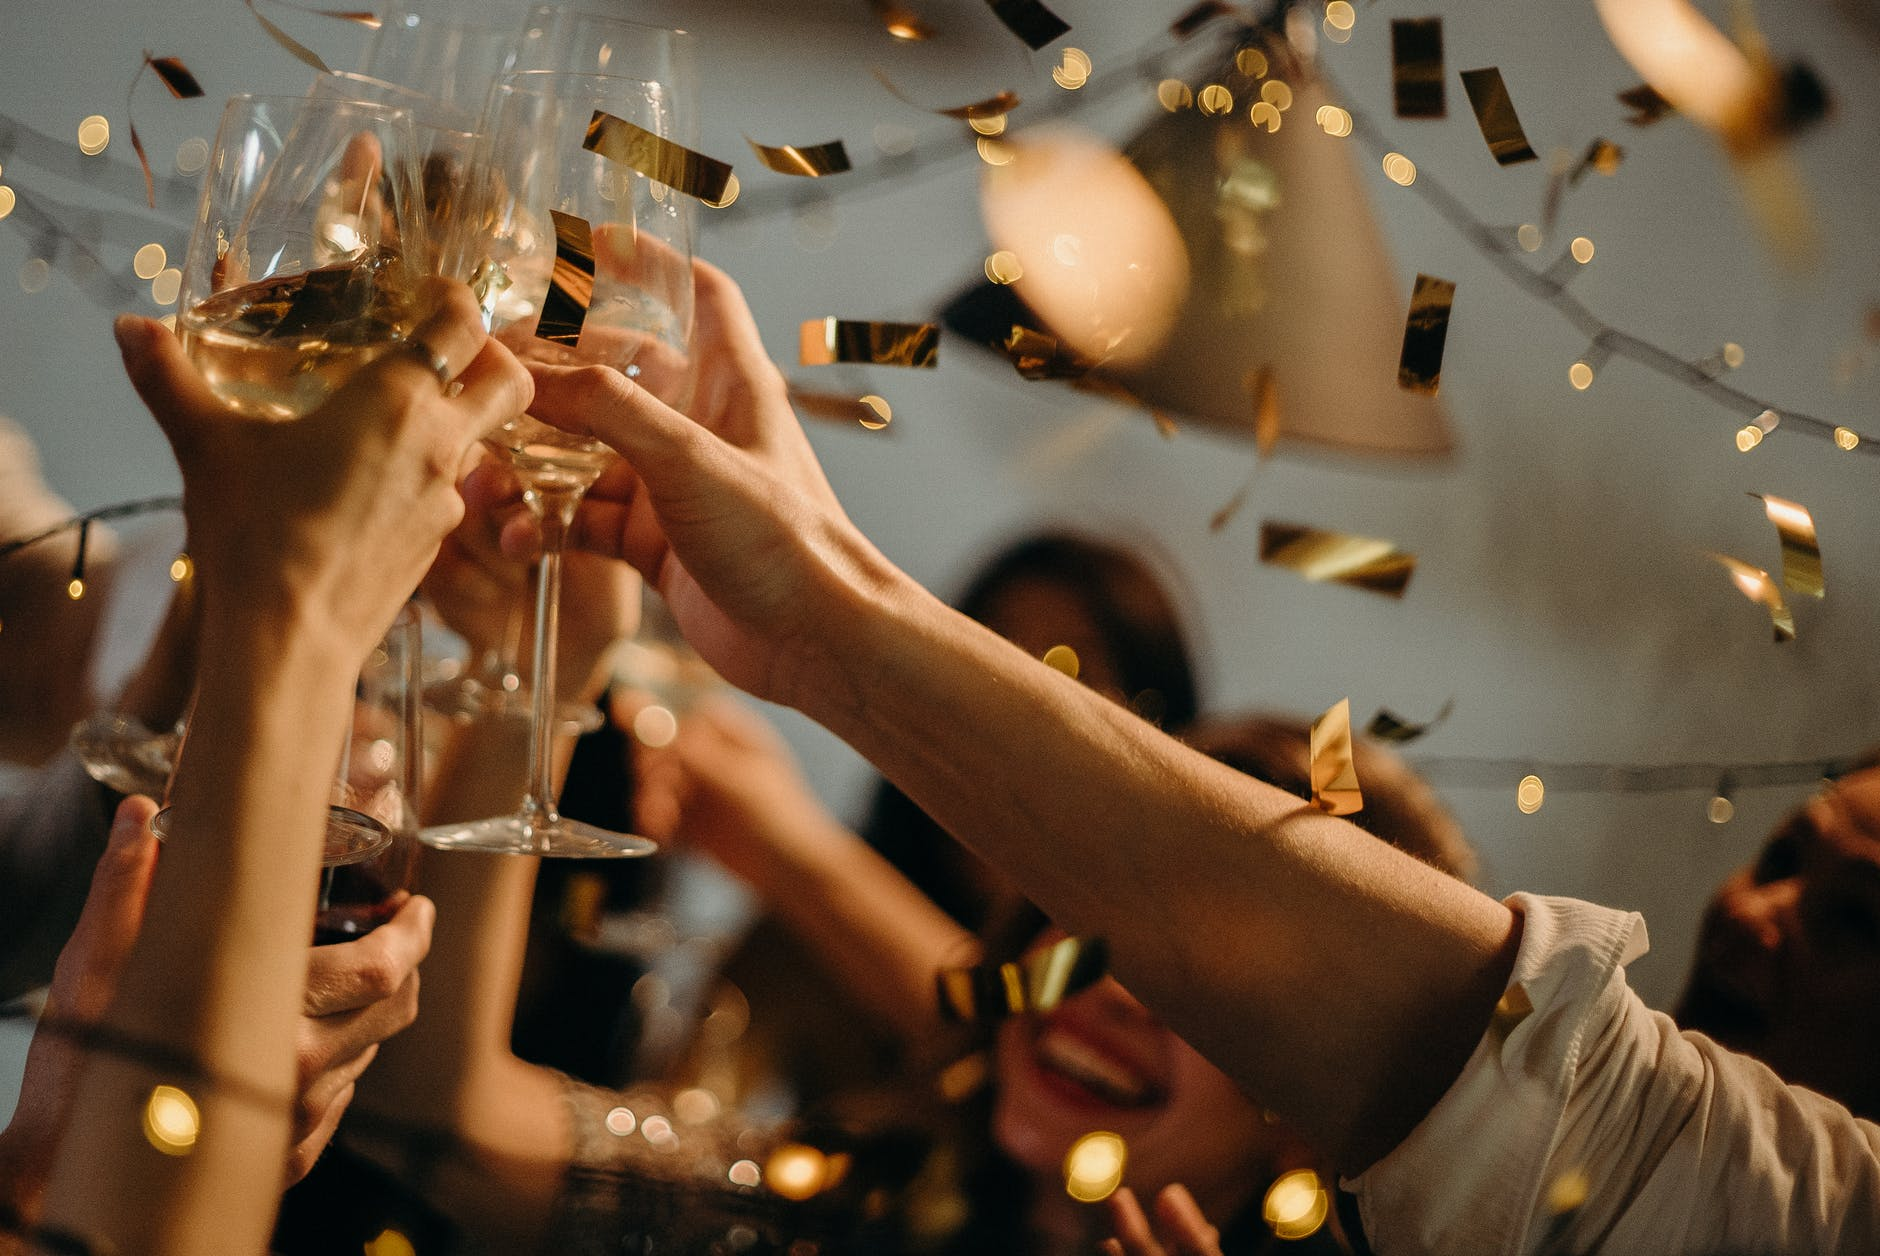 Stock photo showing New Year's Eve celebration with champagne glasses.